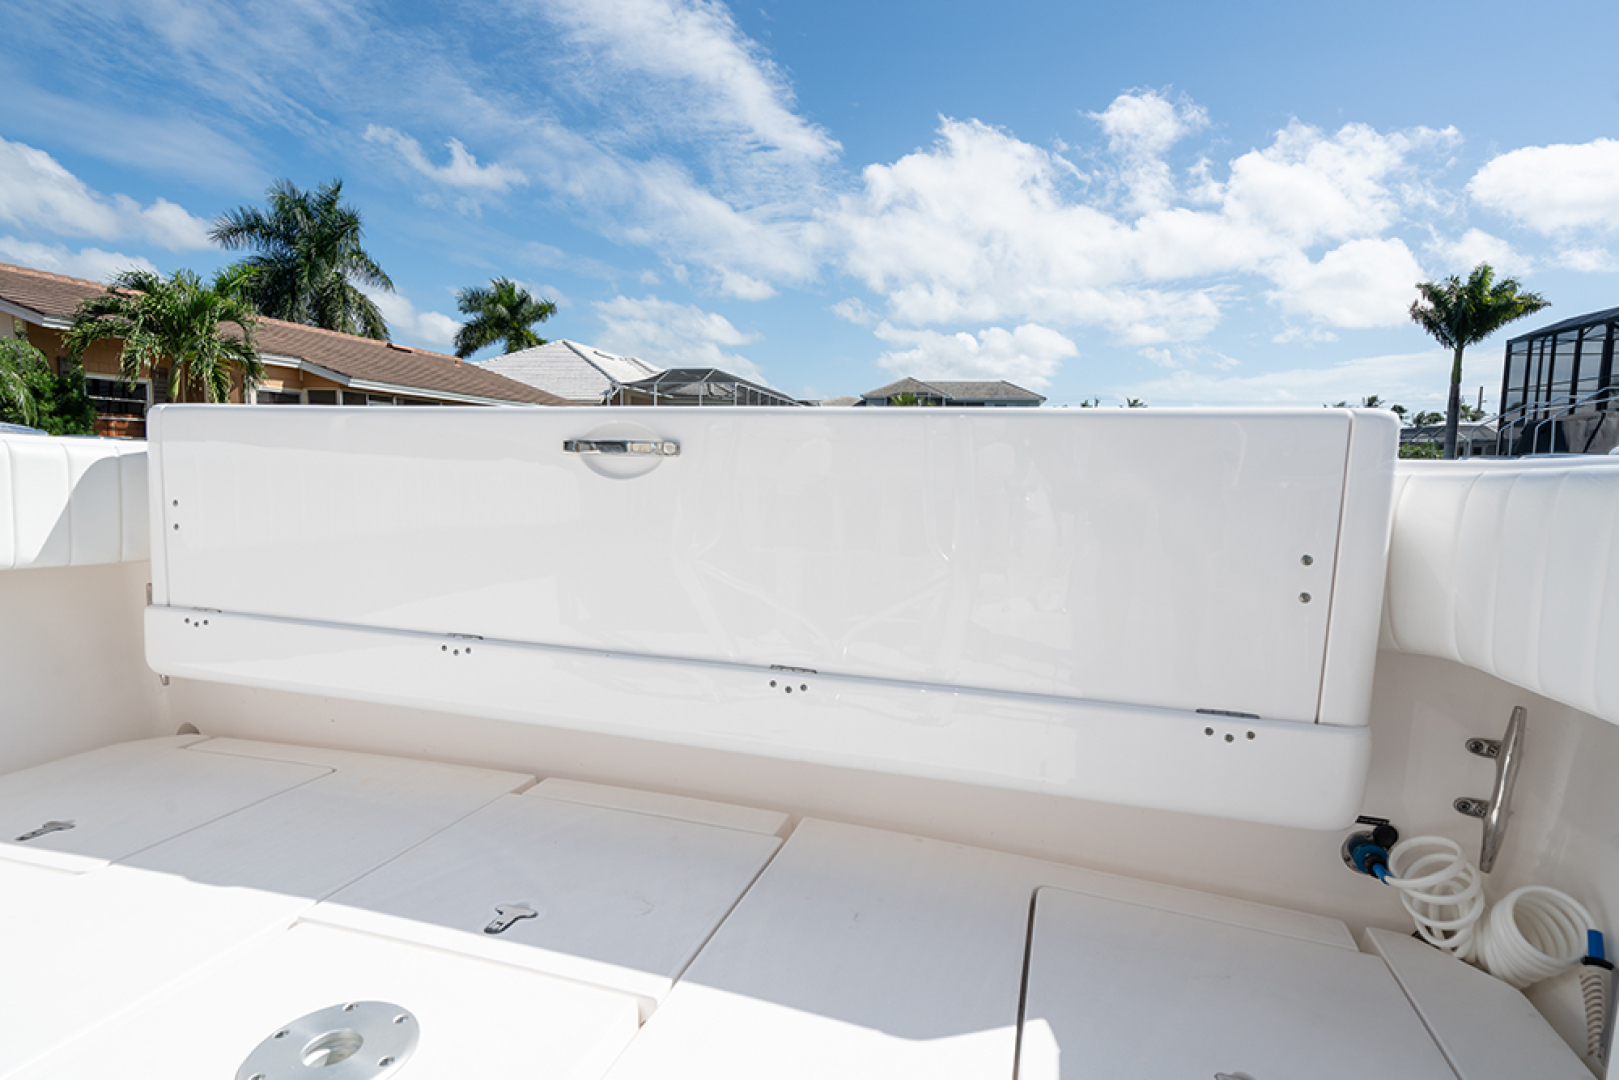 Intrepid-400 Center Console 2017-SPONTANEOUS Marco Island-Florida-United States-Folded rear bench seat in the cockpit-1537588 | Thumbnail